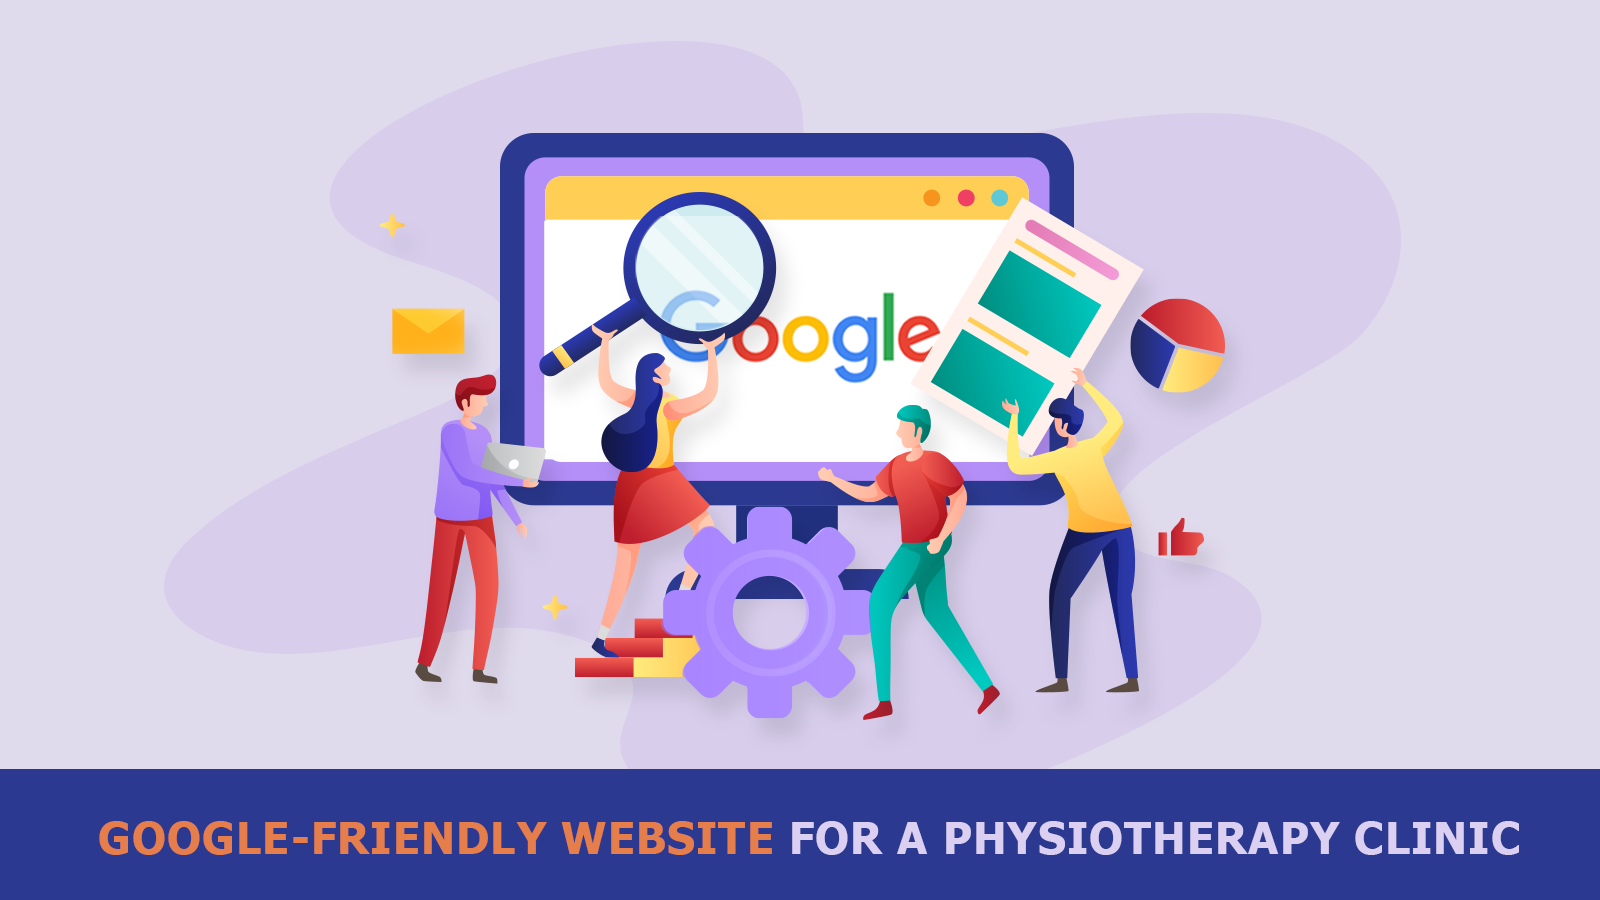 Google-Friendly Website